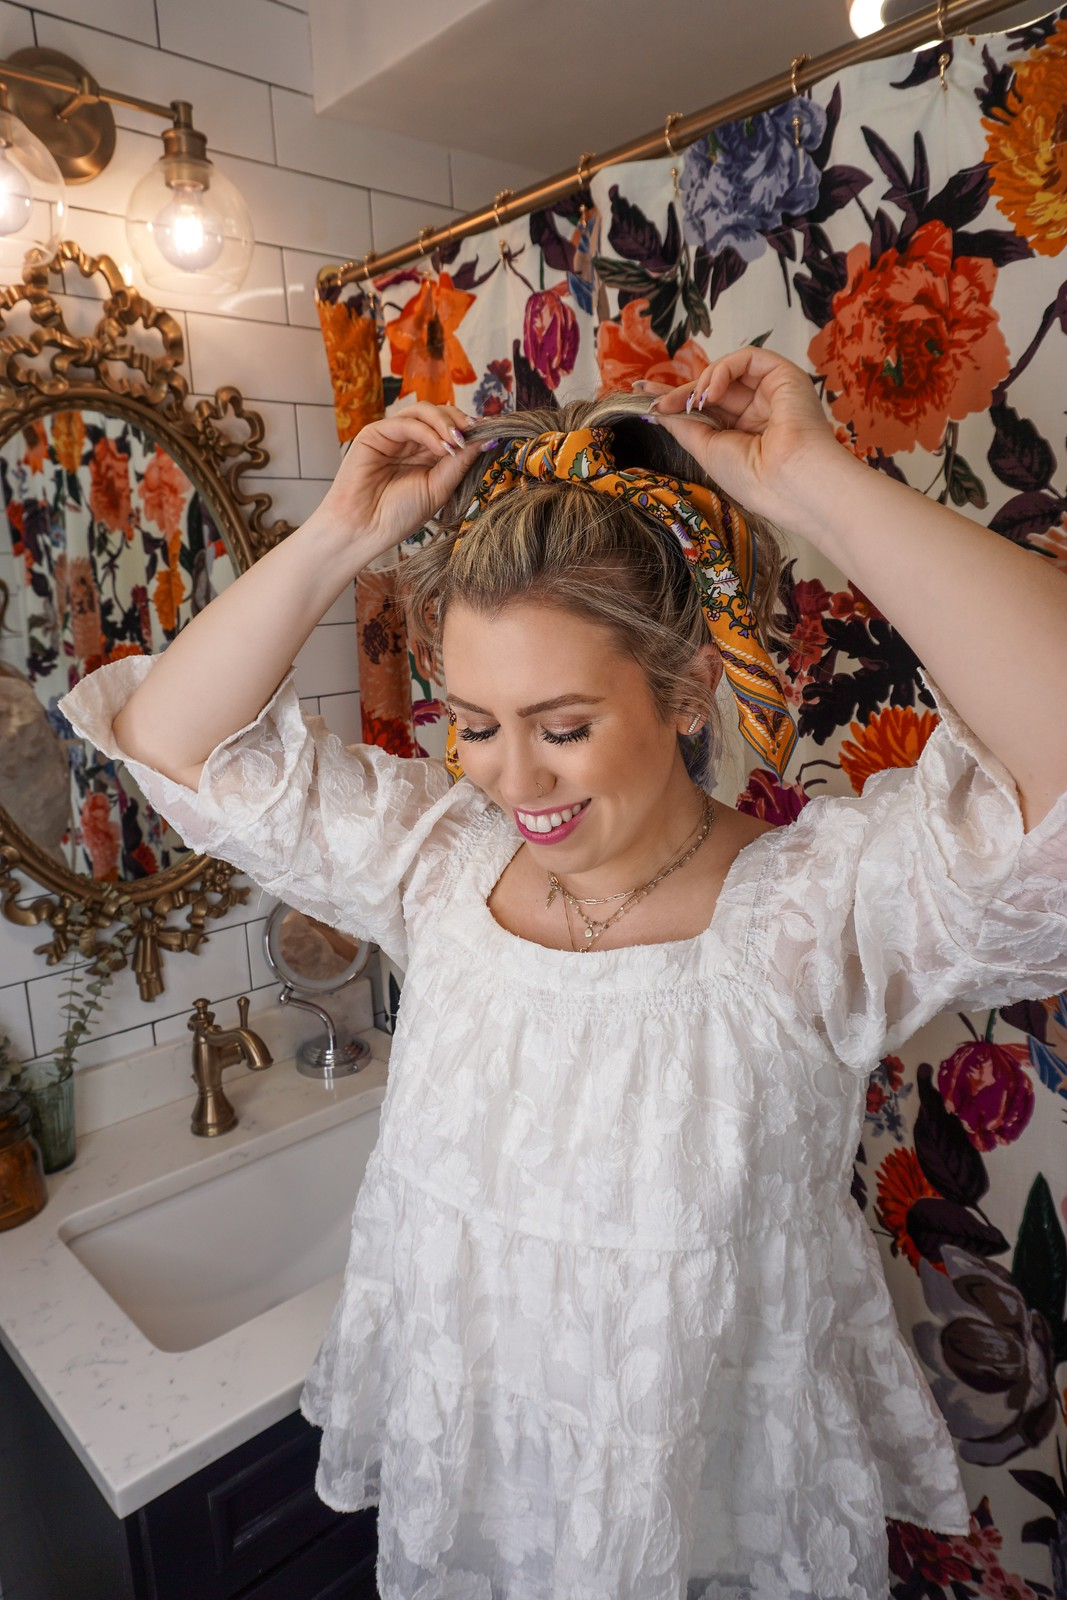 High Pony | 6 Ways to Wear a Scarf in Your Hair | How to Wear a Scarf in Your Hair | Easy Hair Tutorial | Summer Hair Tutorials | Hair Tutorial Videos